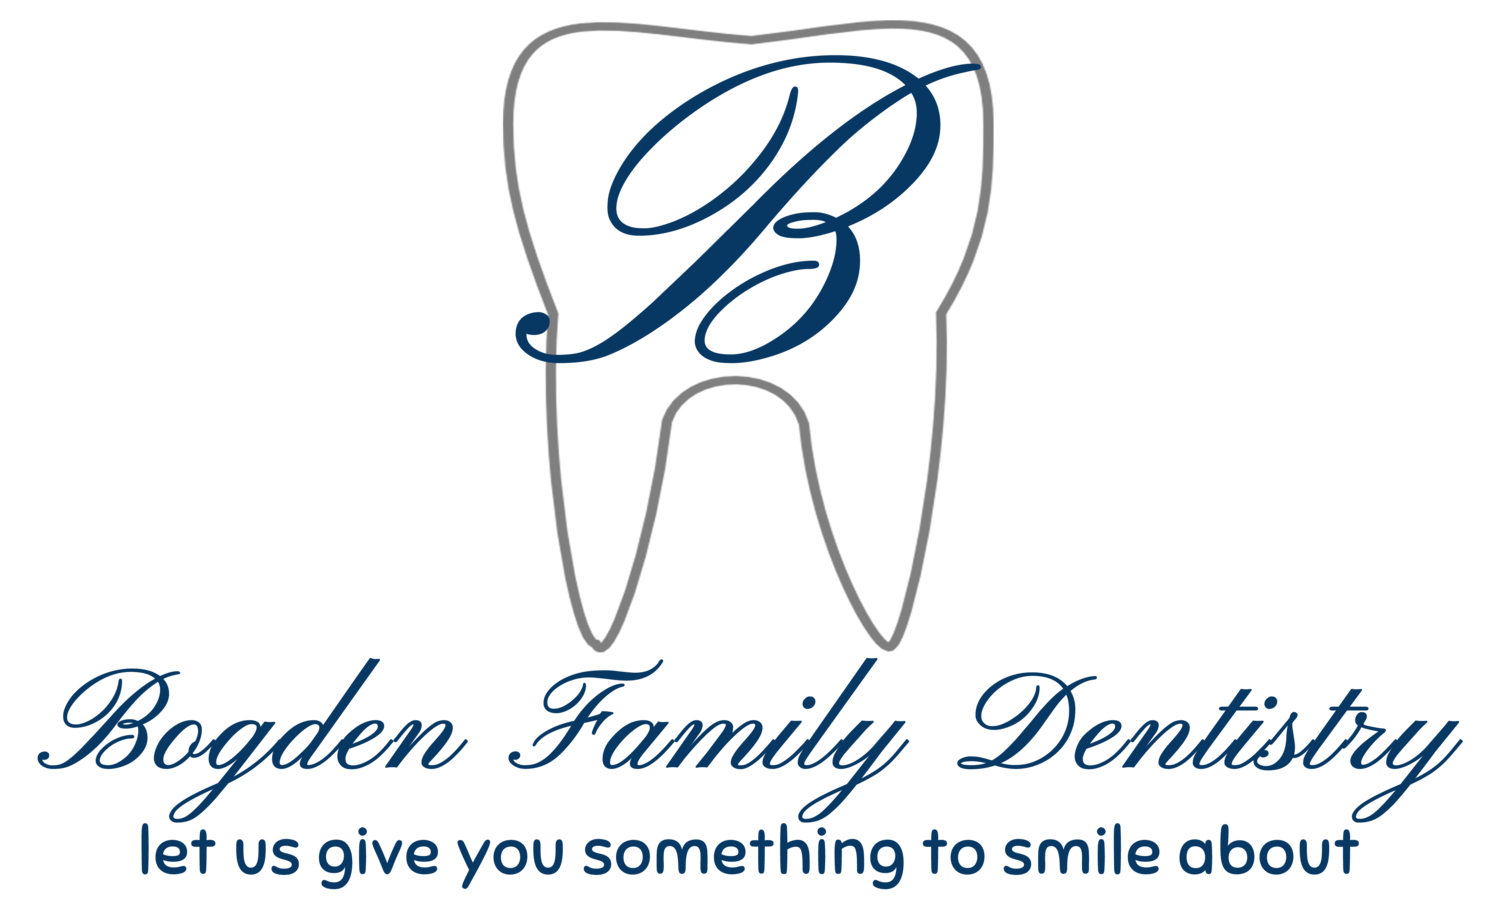 Bogden Family Dentistry